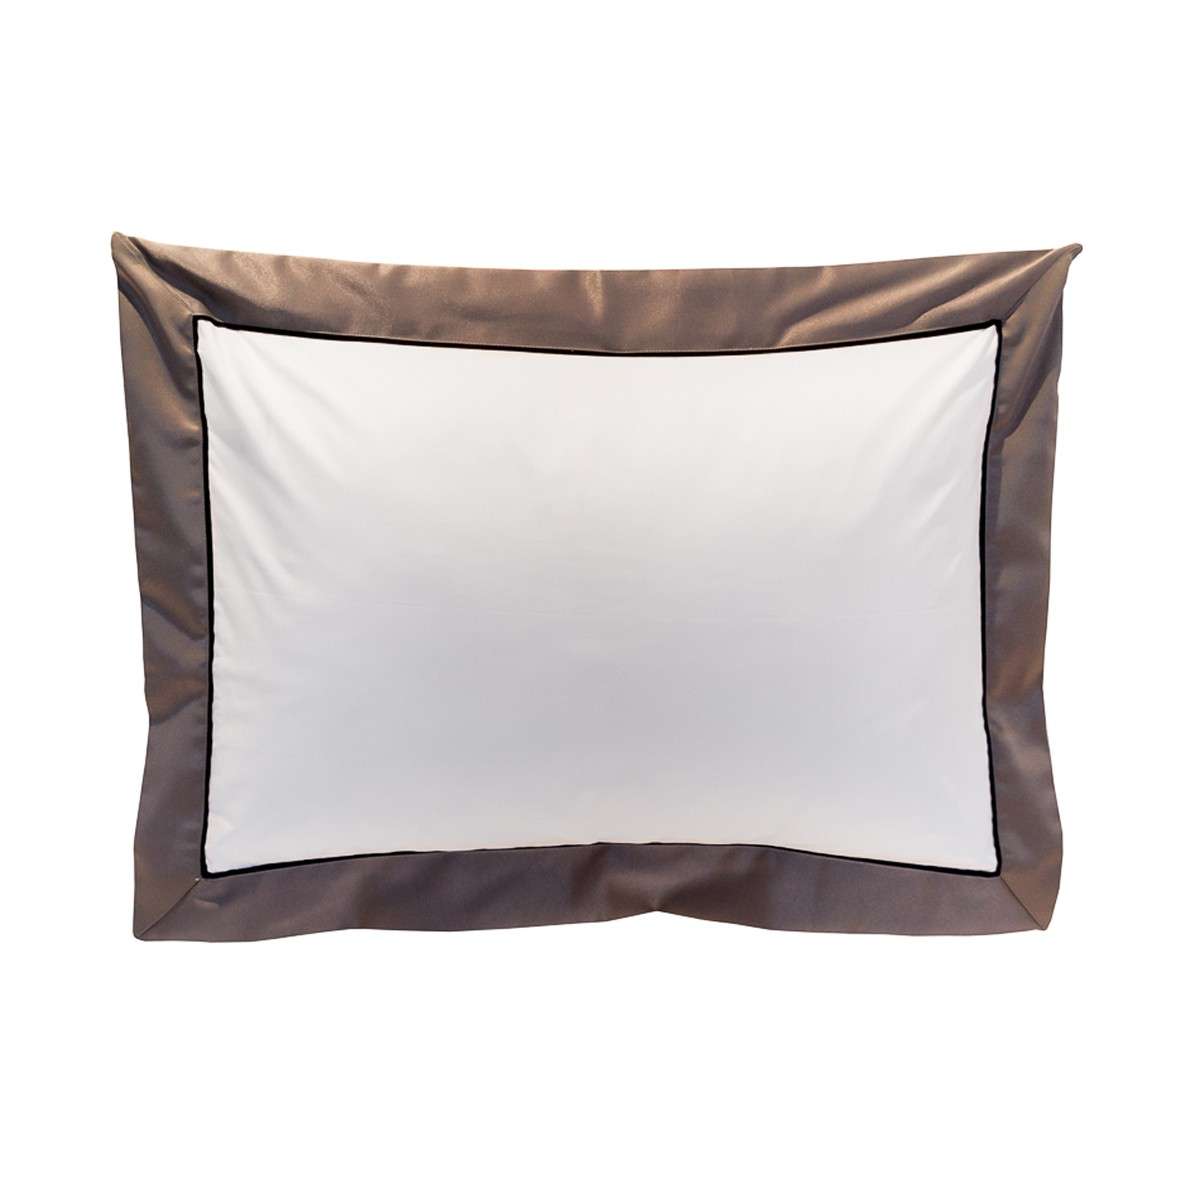 Deep Border Oxford Regular Pillow Case